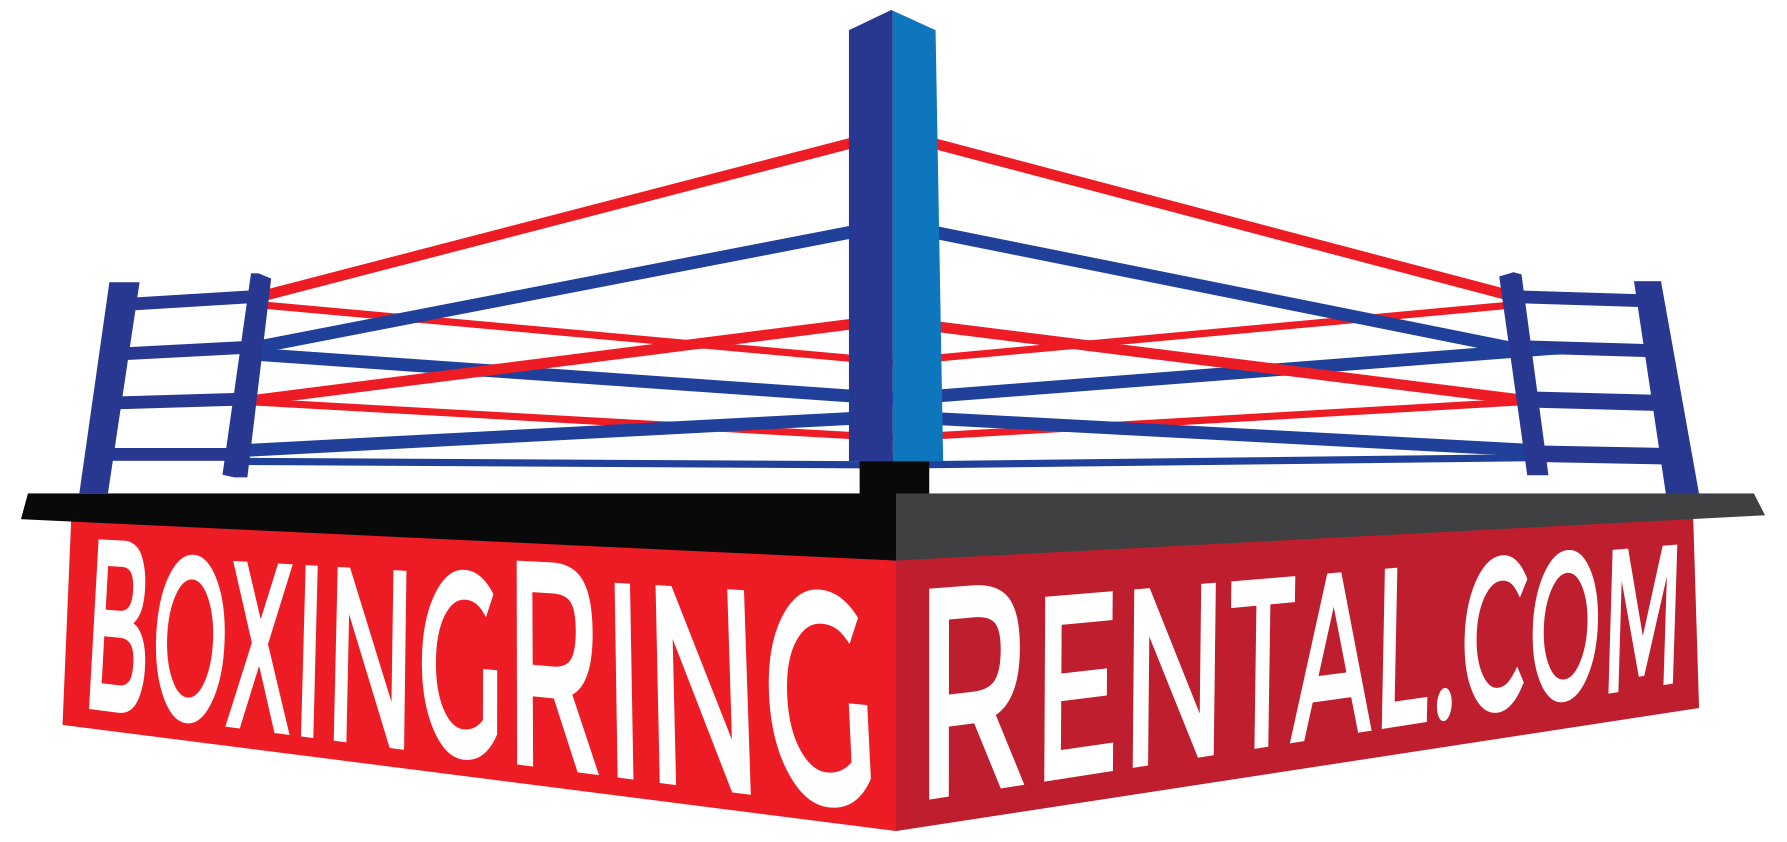 BoxingRing com | Made in USA Boxing Rings & Boxing Ring